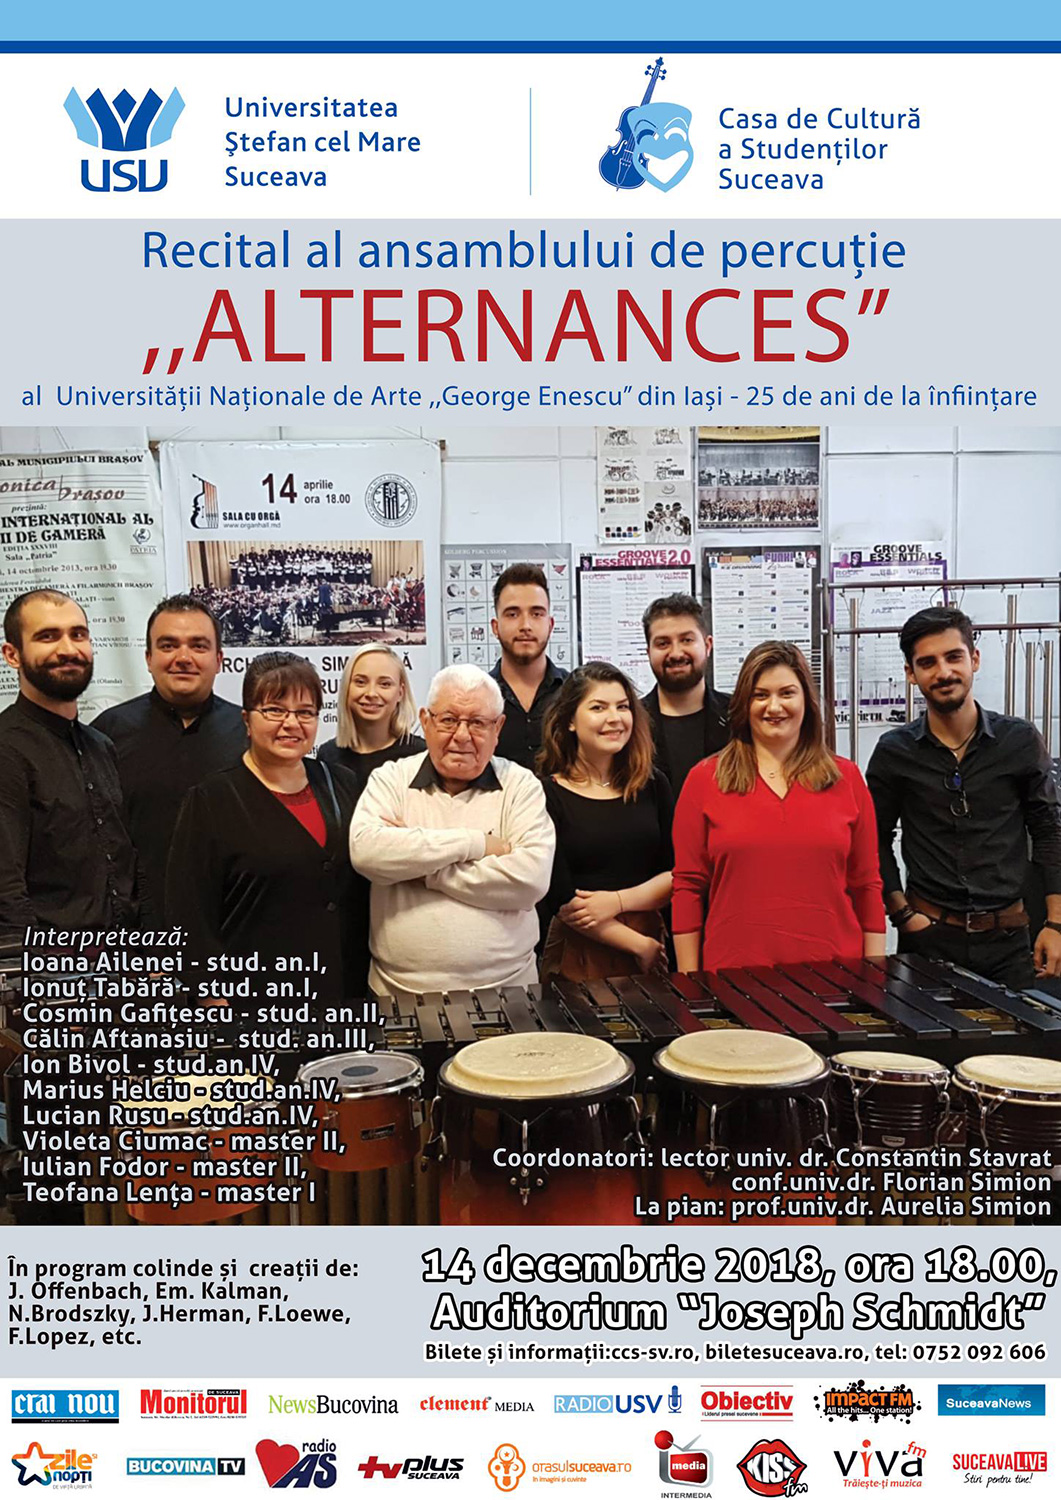 Alternances